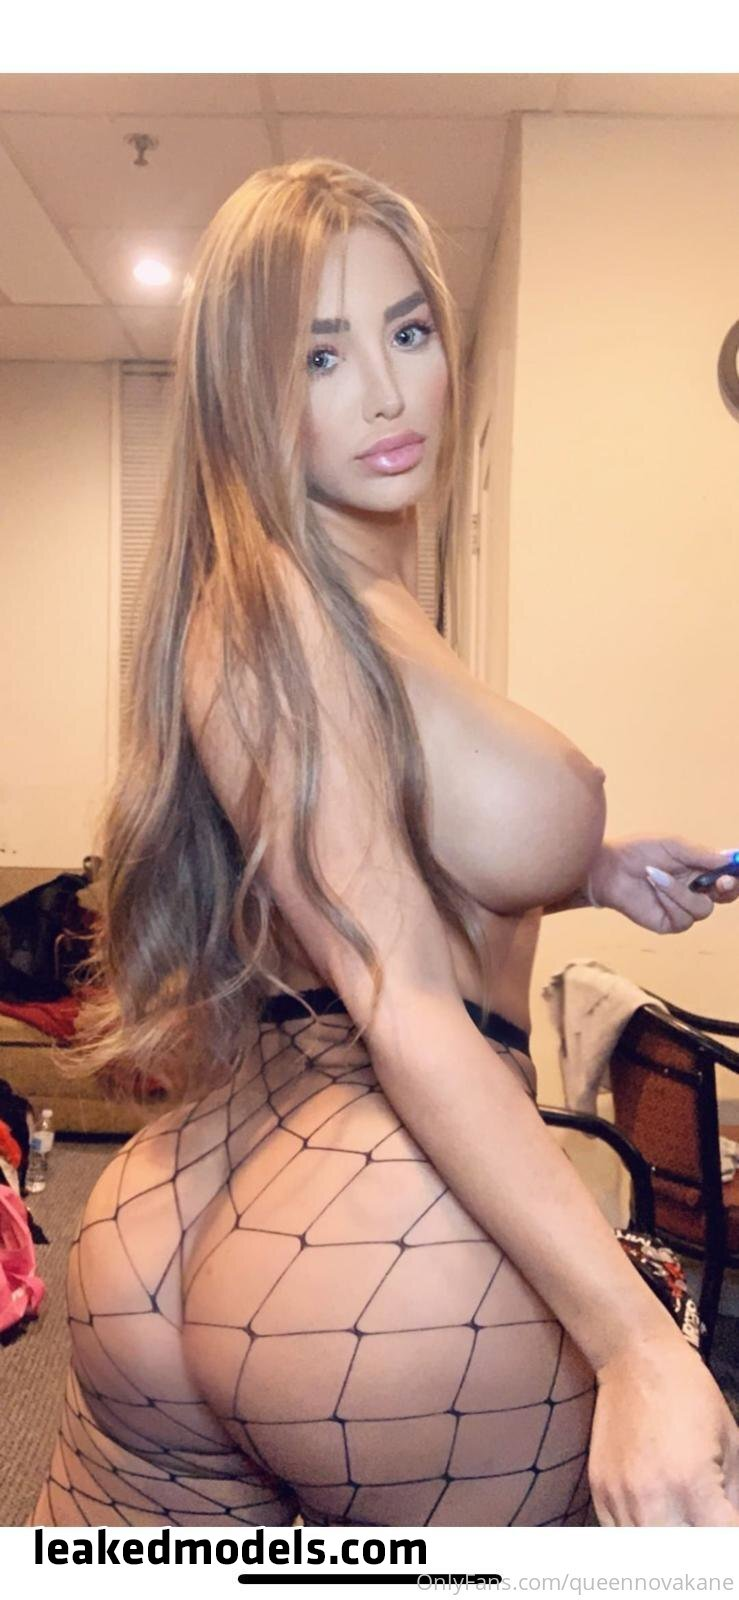 queennovakane OnlyFans Nude Leaks (35 Photos)